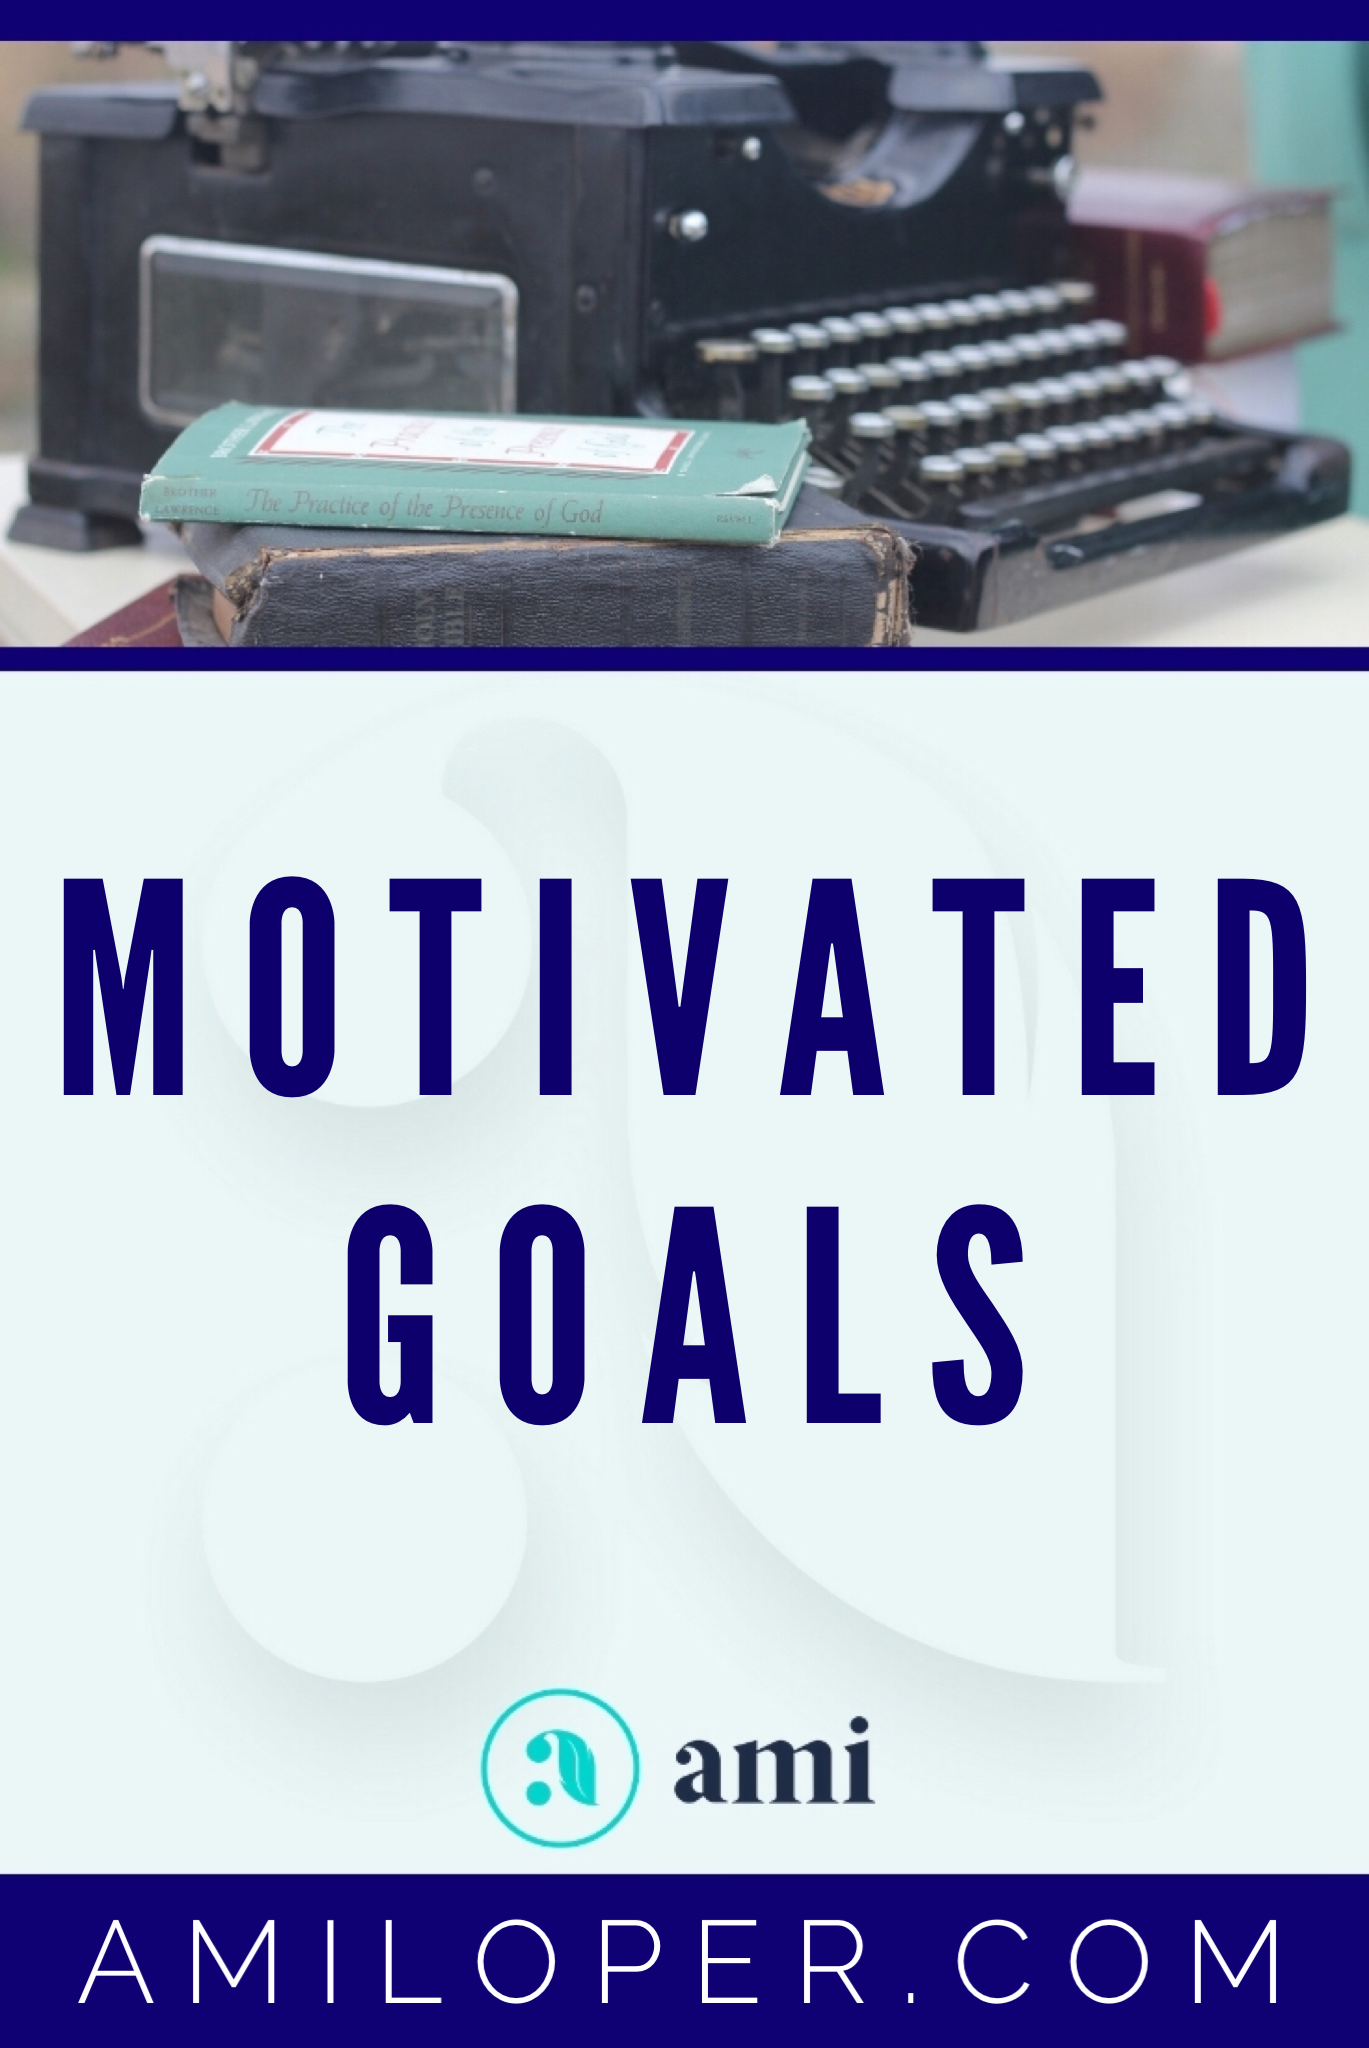 Are you setting goals this New Year? If you are, I'm sure you have the best of intentions. Many of us make goals, but few stick with them. How can you craft goals that are keep-able and that you actually WANT to keep? I'd like to help! I've had New Years goals for nearly every year of my life and I think I've learned a thing or two that I'd love to pass on to you! #goals #resolutions #ChristianBlog